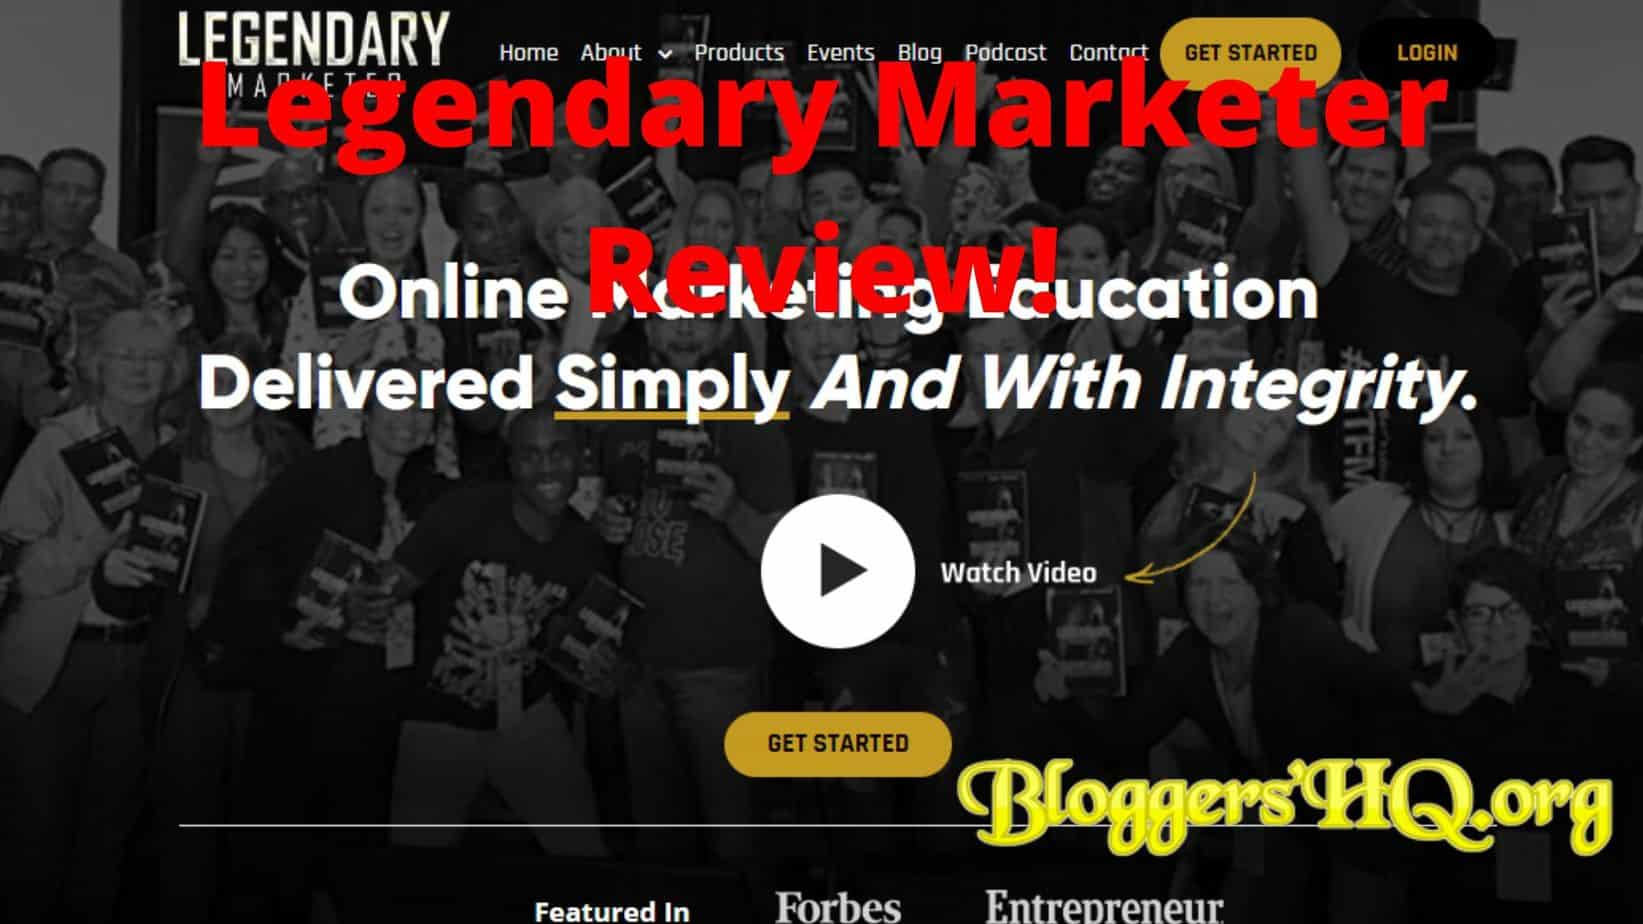 Legendary Marketer  Internet Marketing Program Offers Today  2020